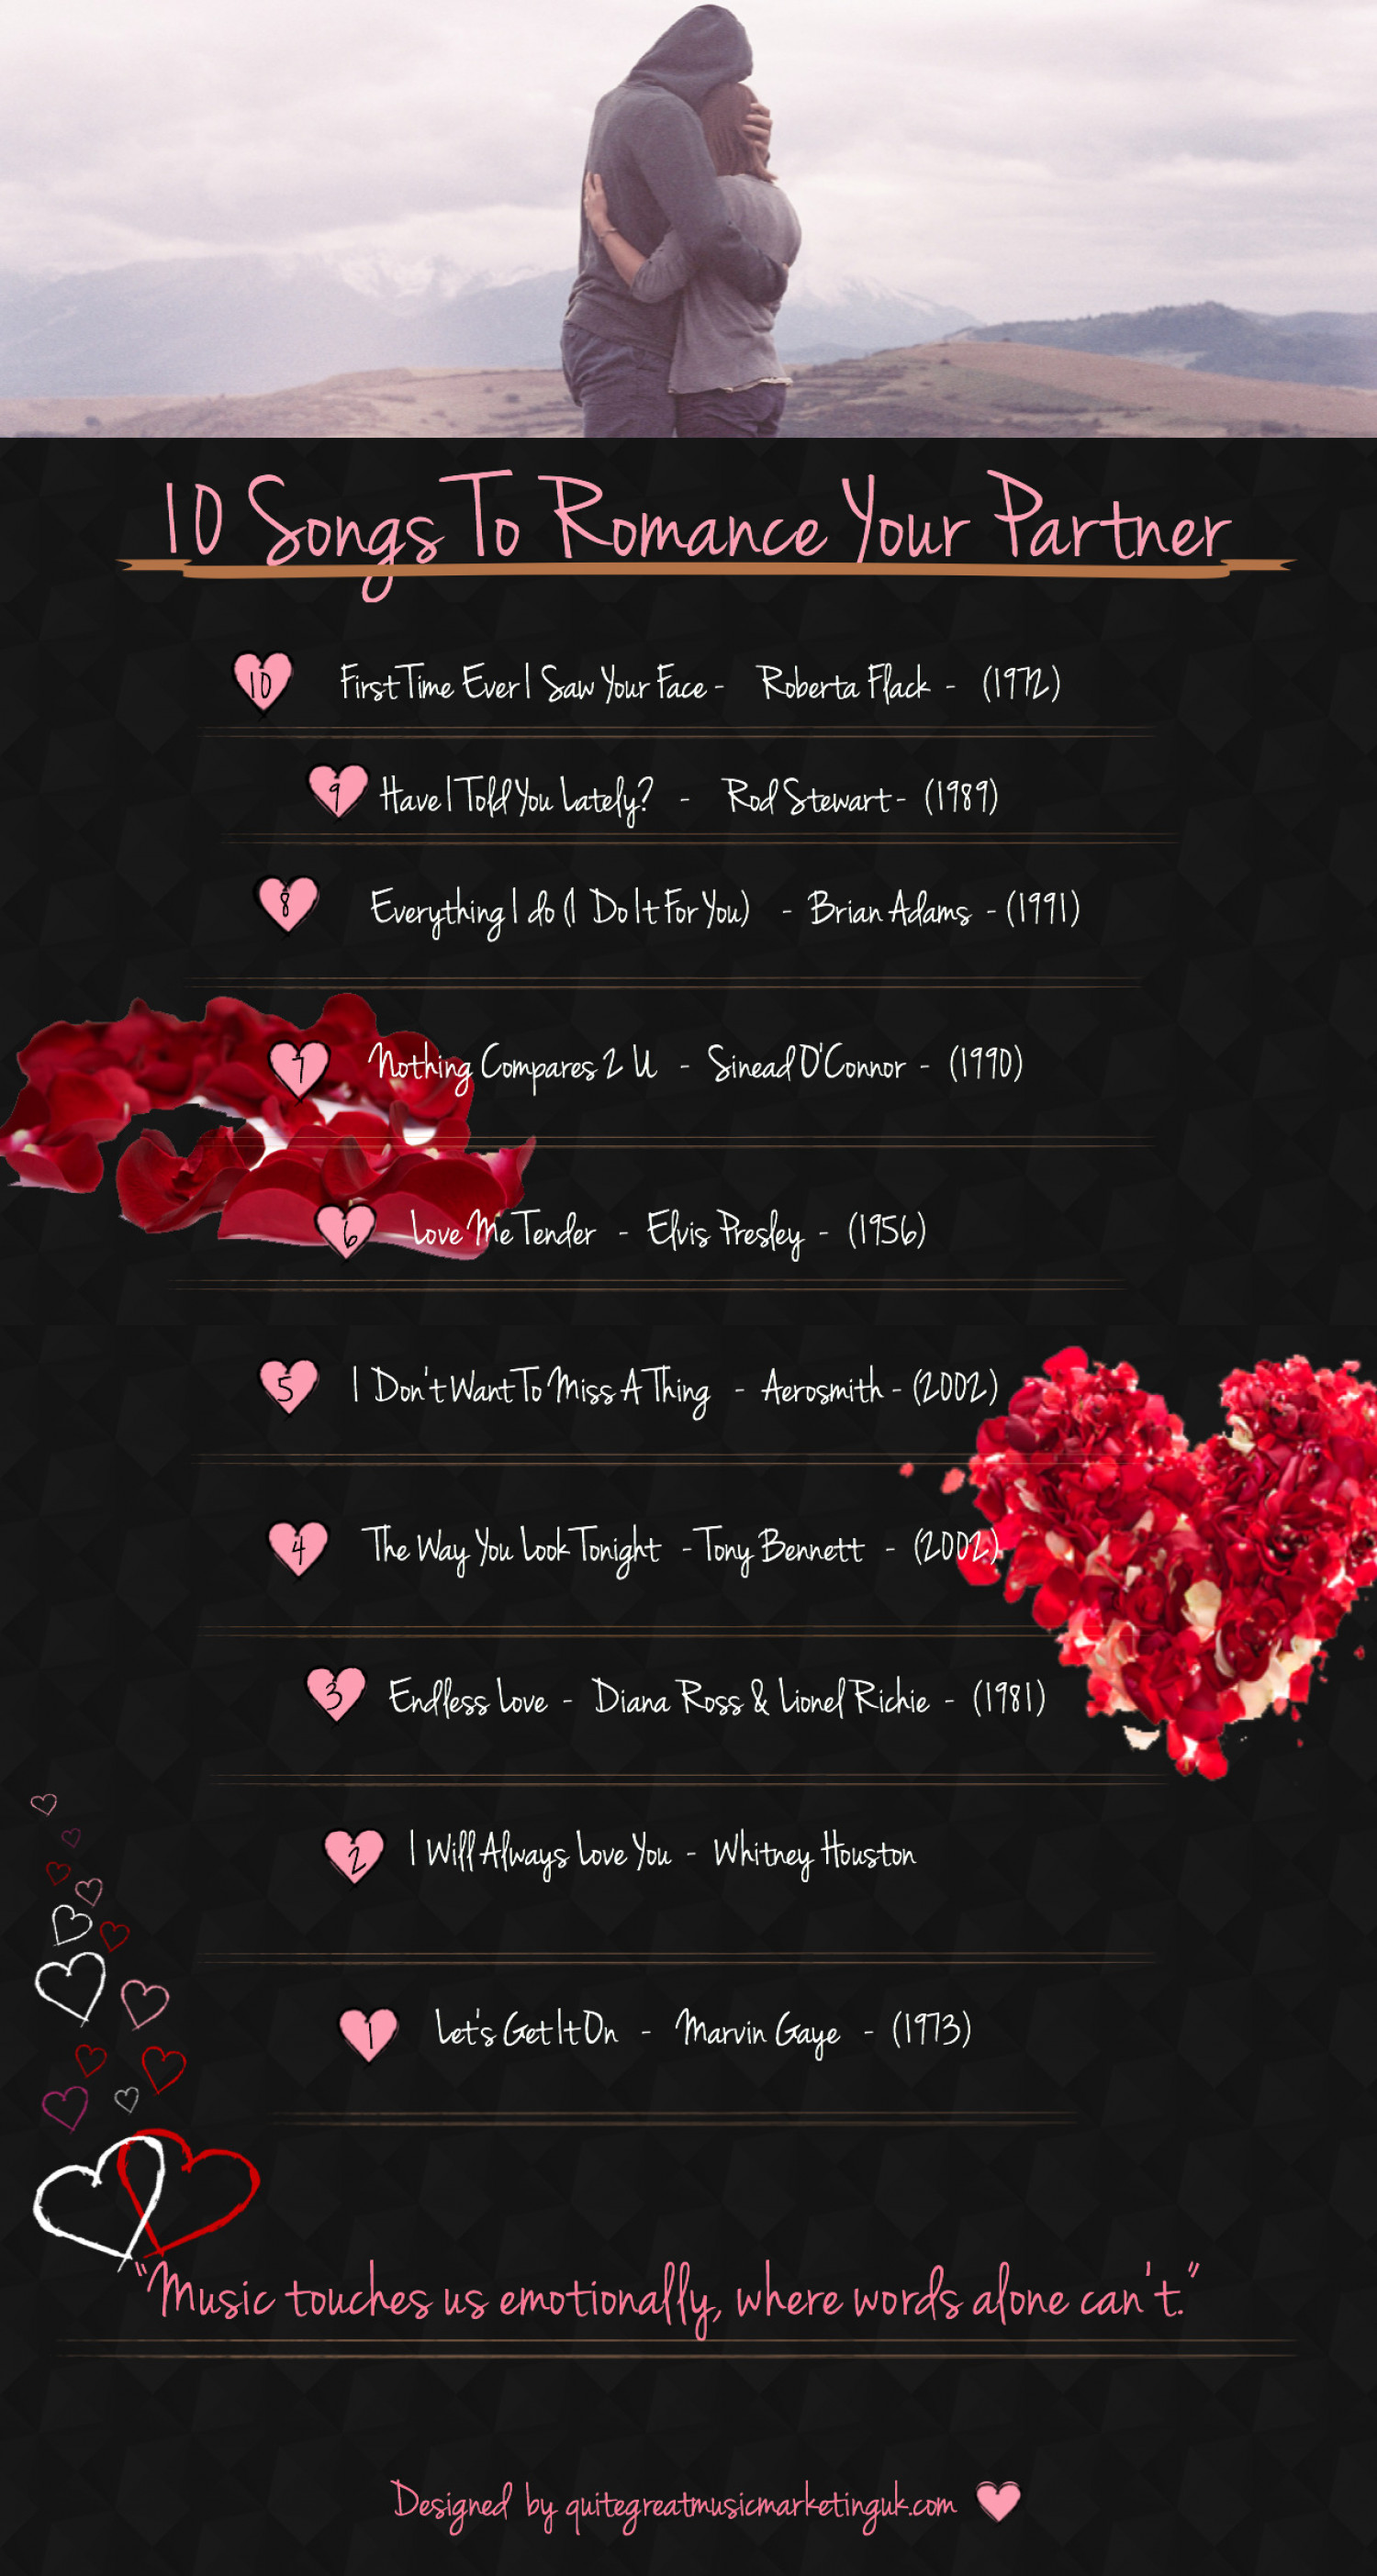 10 Songs To Romance Your Partner Infographic